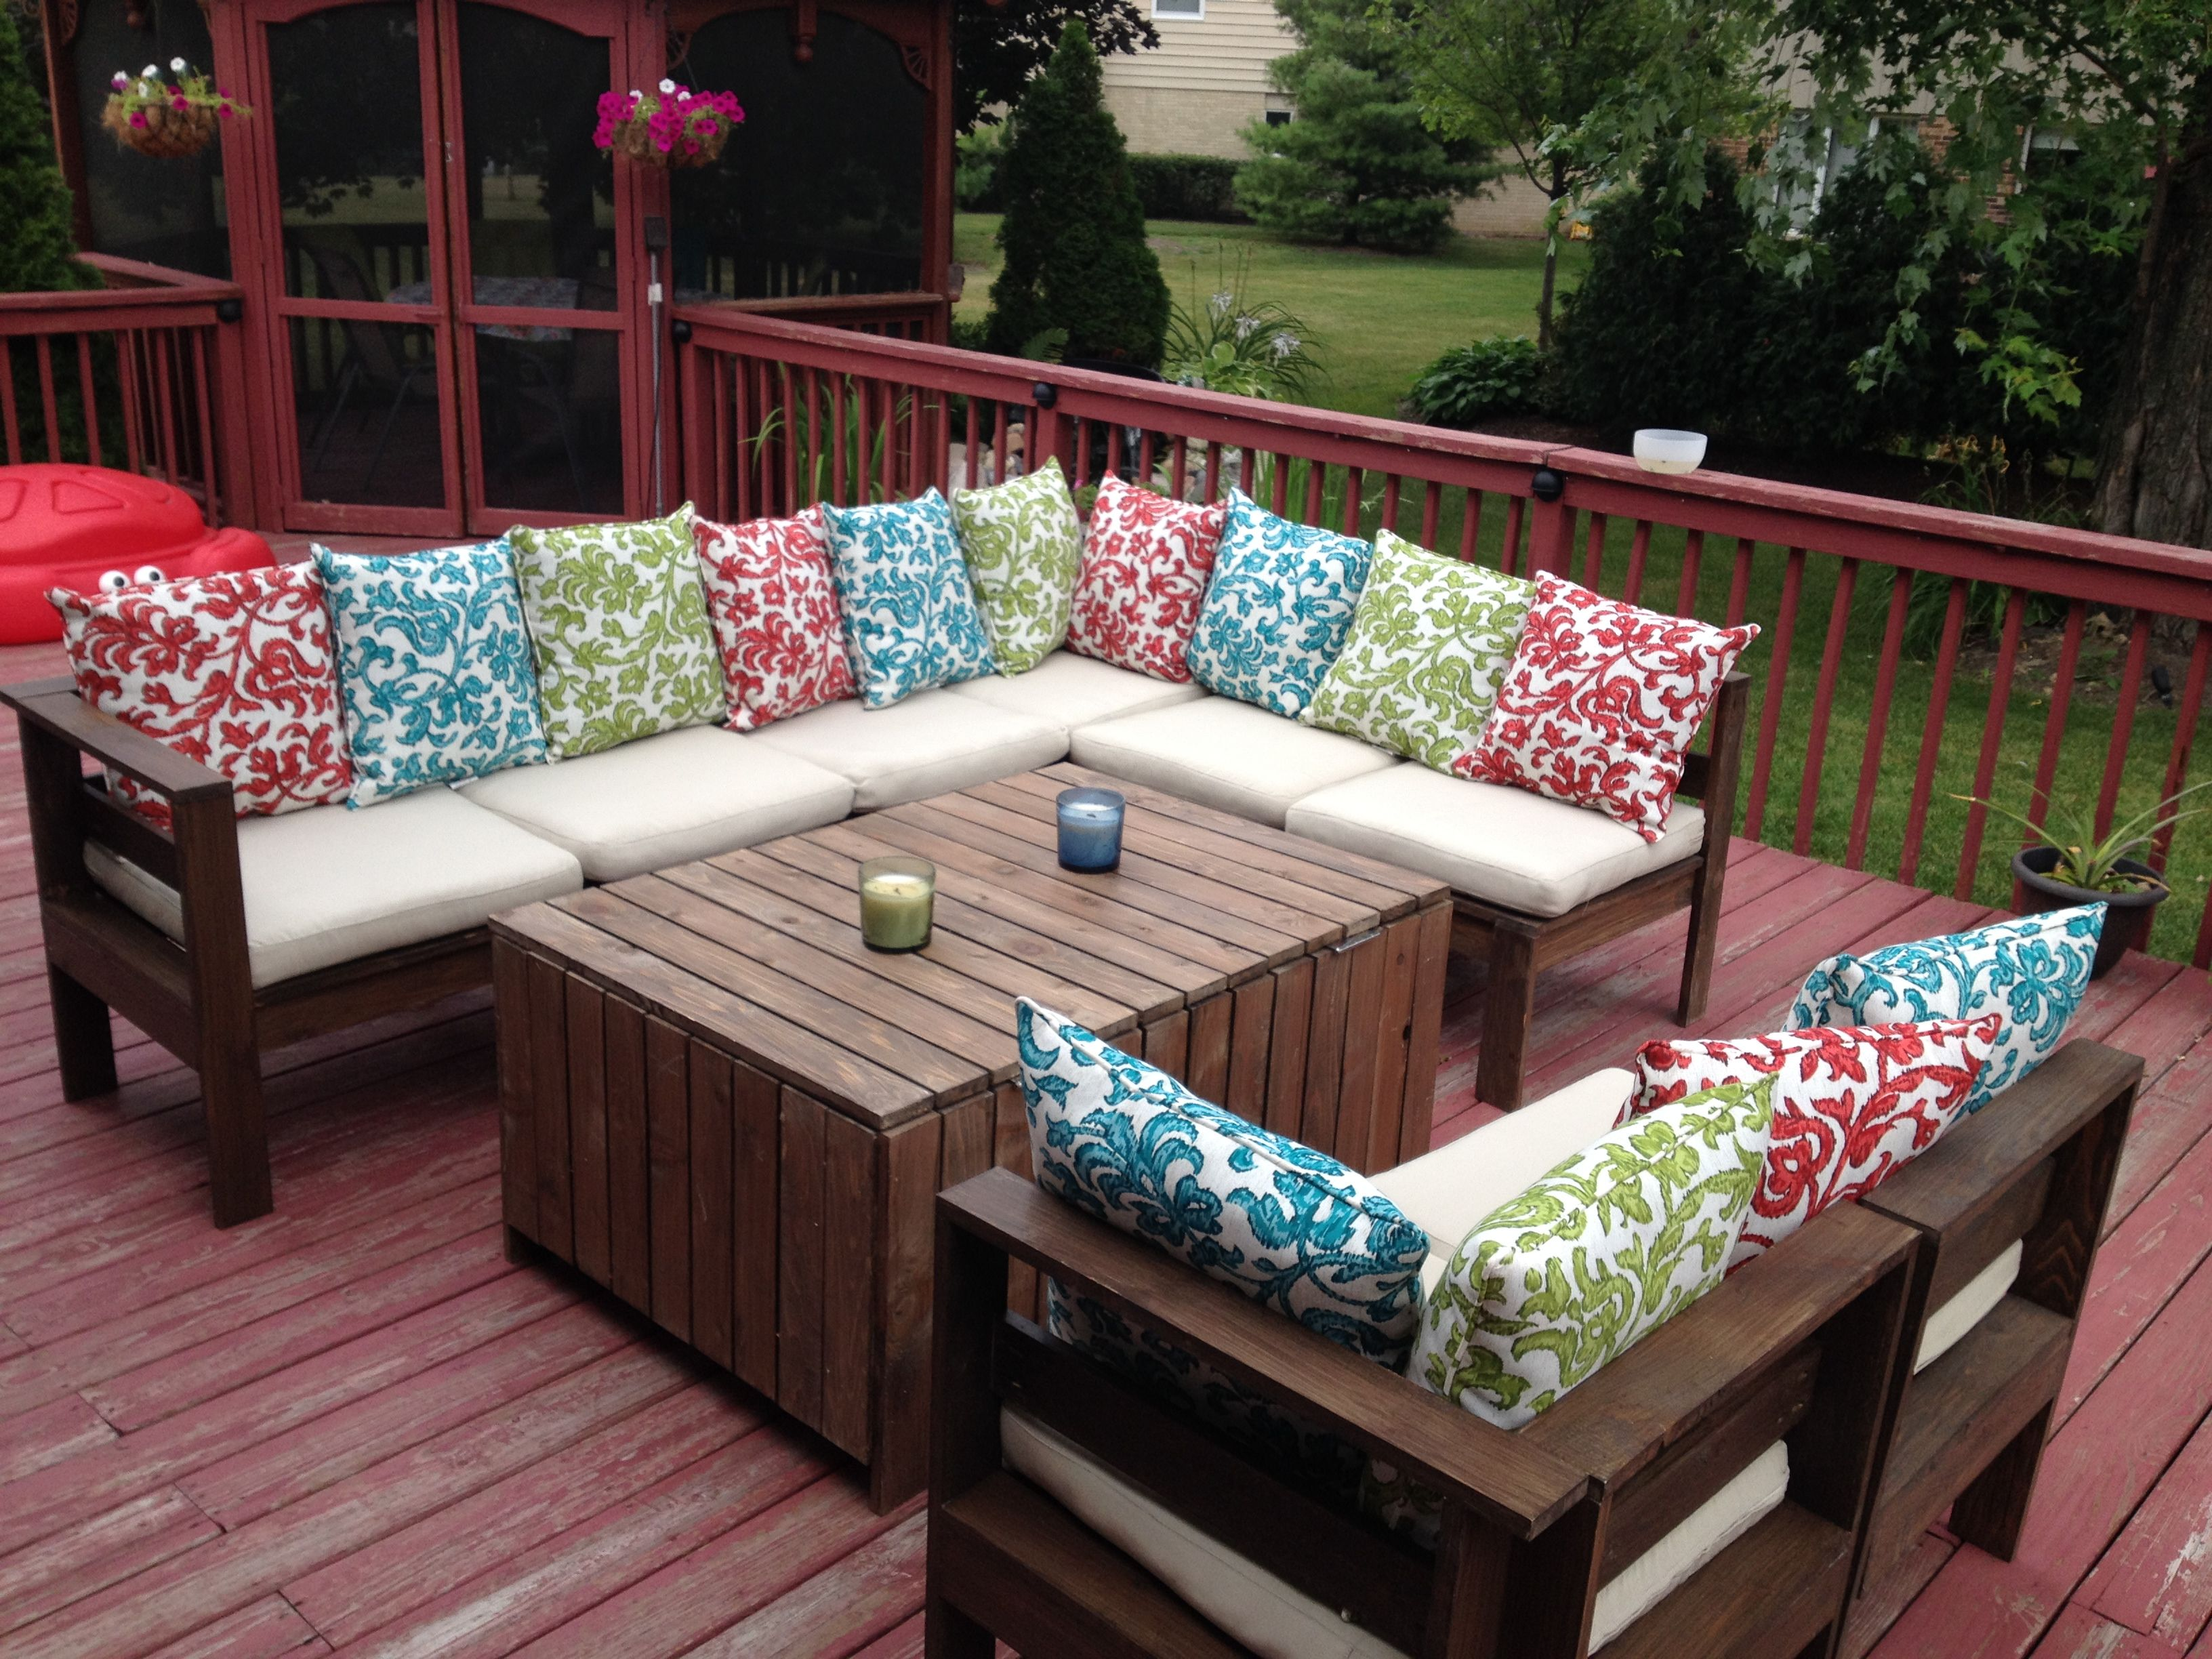 Do It Yourself Patio Chair Cushions Banquet Folding Covers Modern Outdoor Sectional Table Home Projects From Ana White